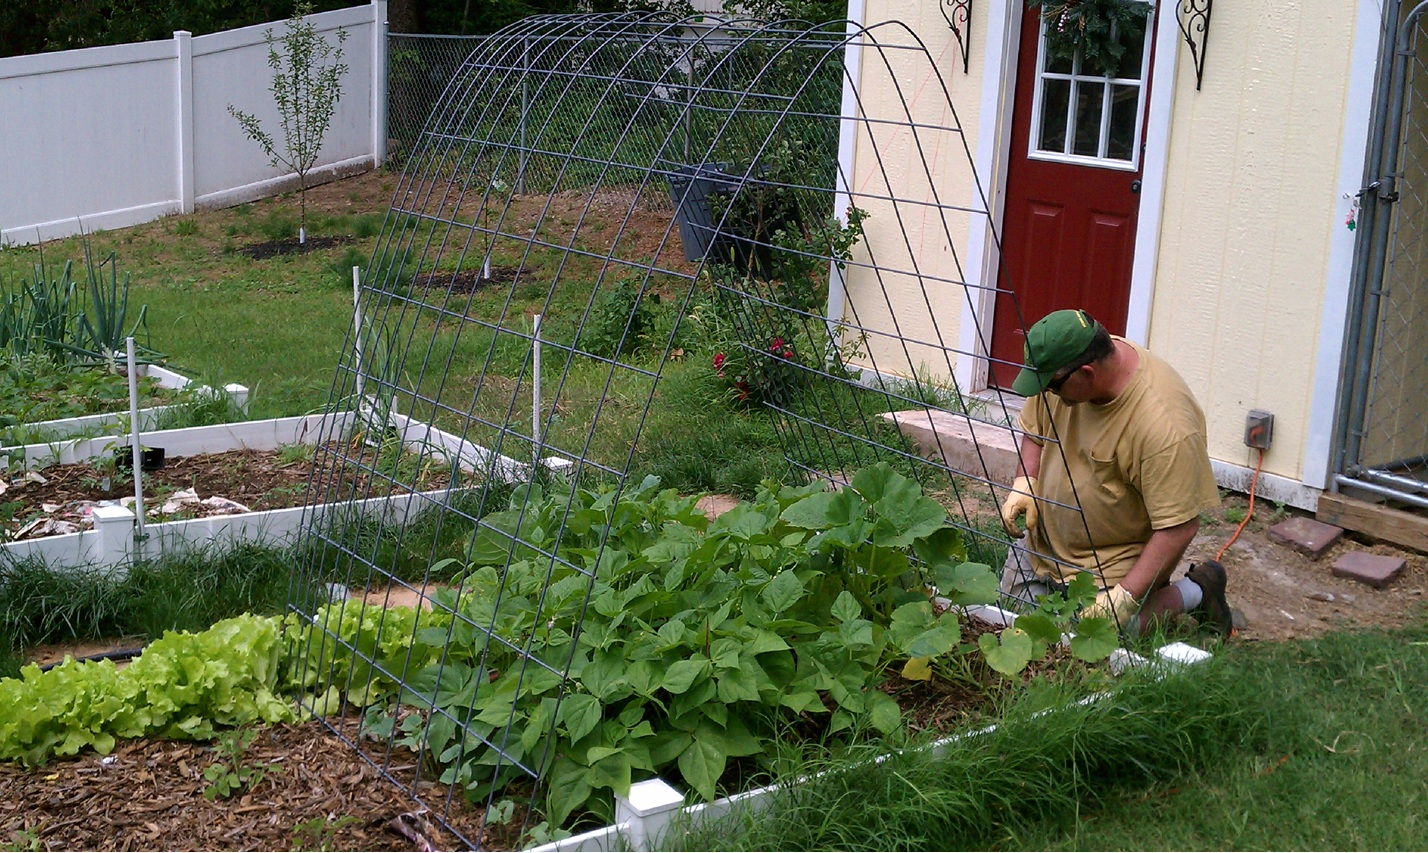 Cranky Puppy Farm: Creative Gardening With Arches